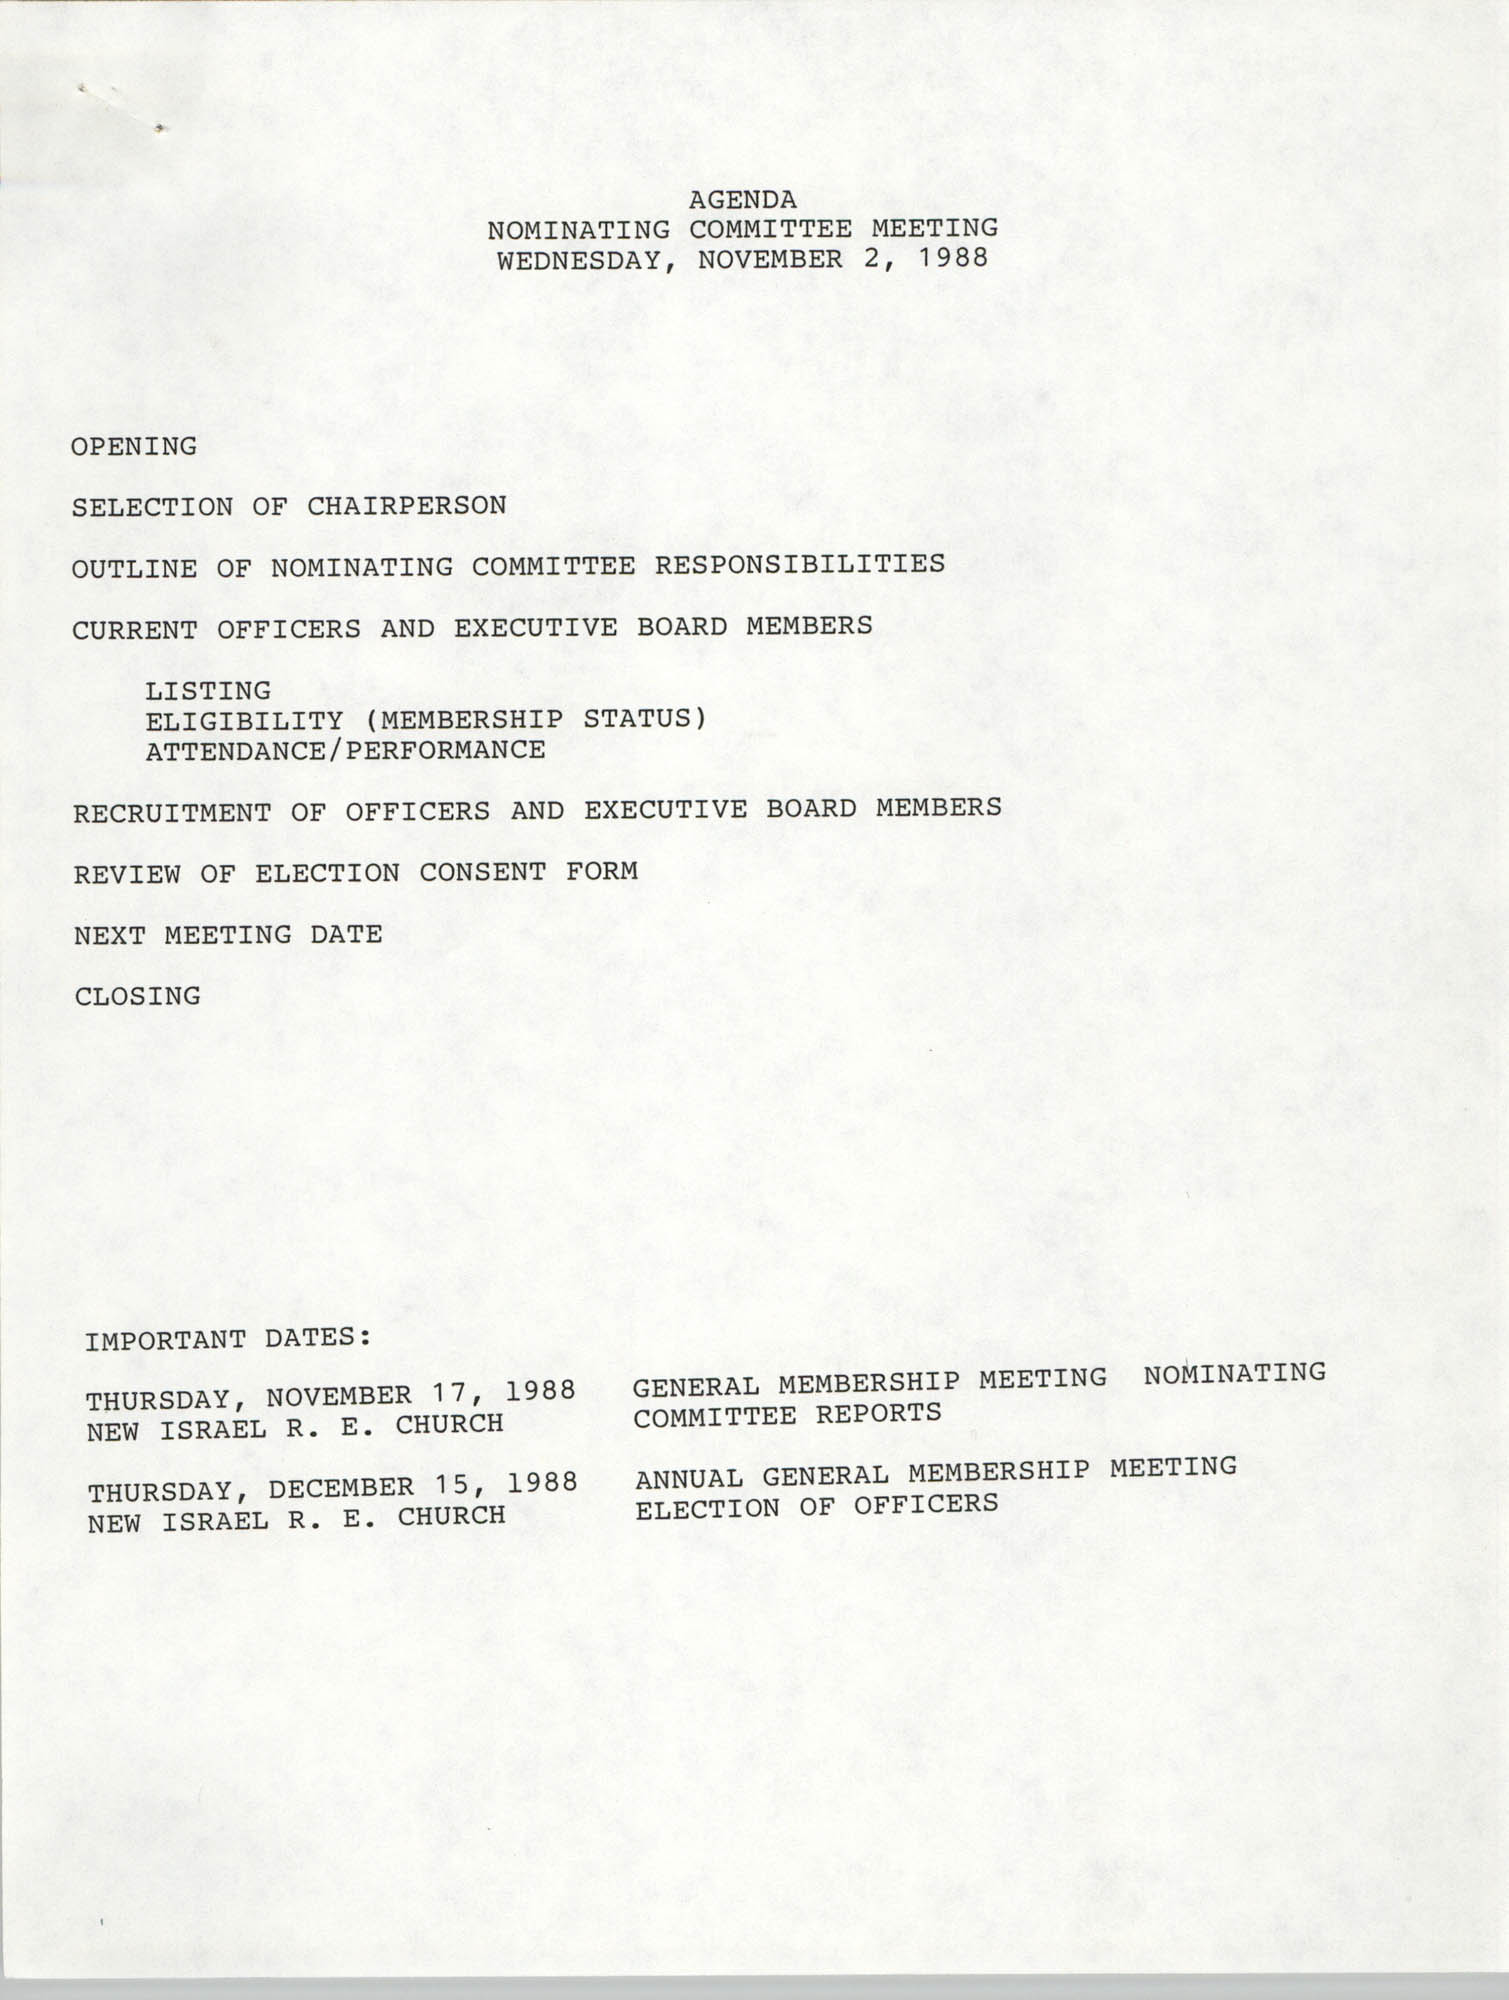 Agenda, Charleston Branch of the NAACP Branch Nominating Committee Meeting, November 2, 1988